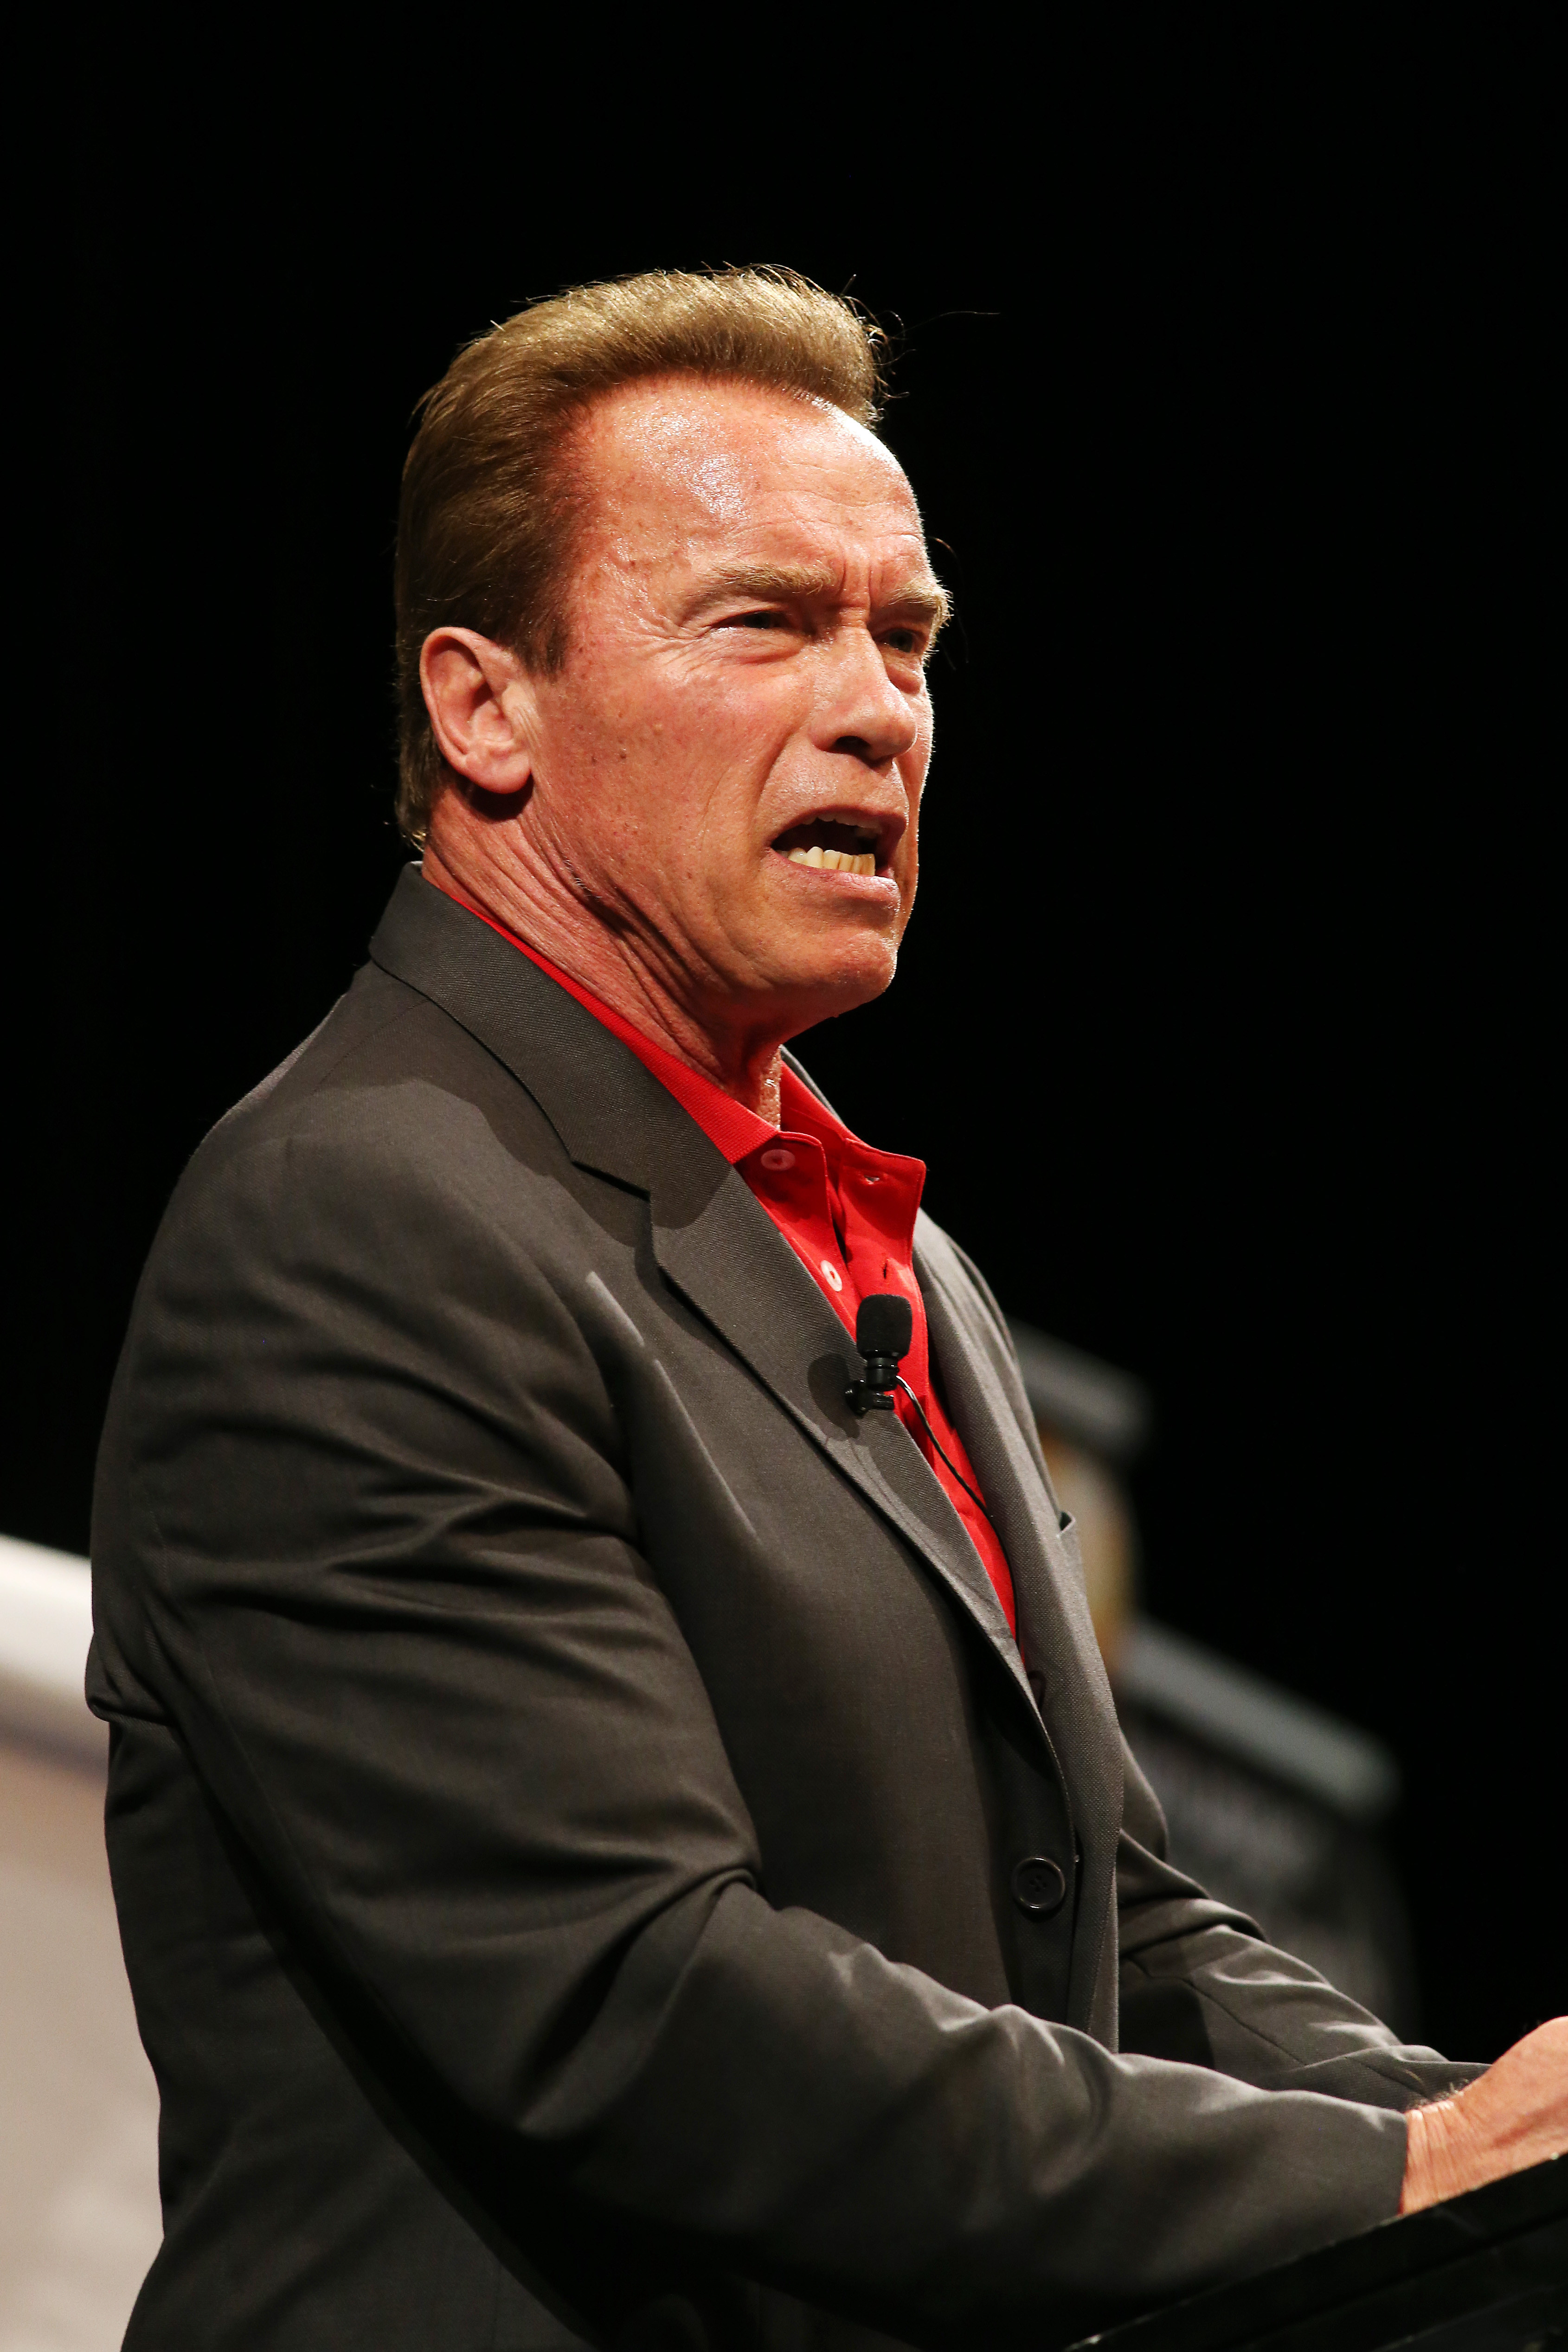 Arnold Schwarzenegger attends the Queensland Real Estate Agents' Summit 2015 at RNA Convention Centre on March 17, 2015 in Brisbane, Australia.